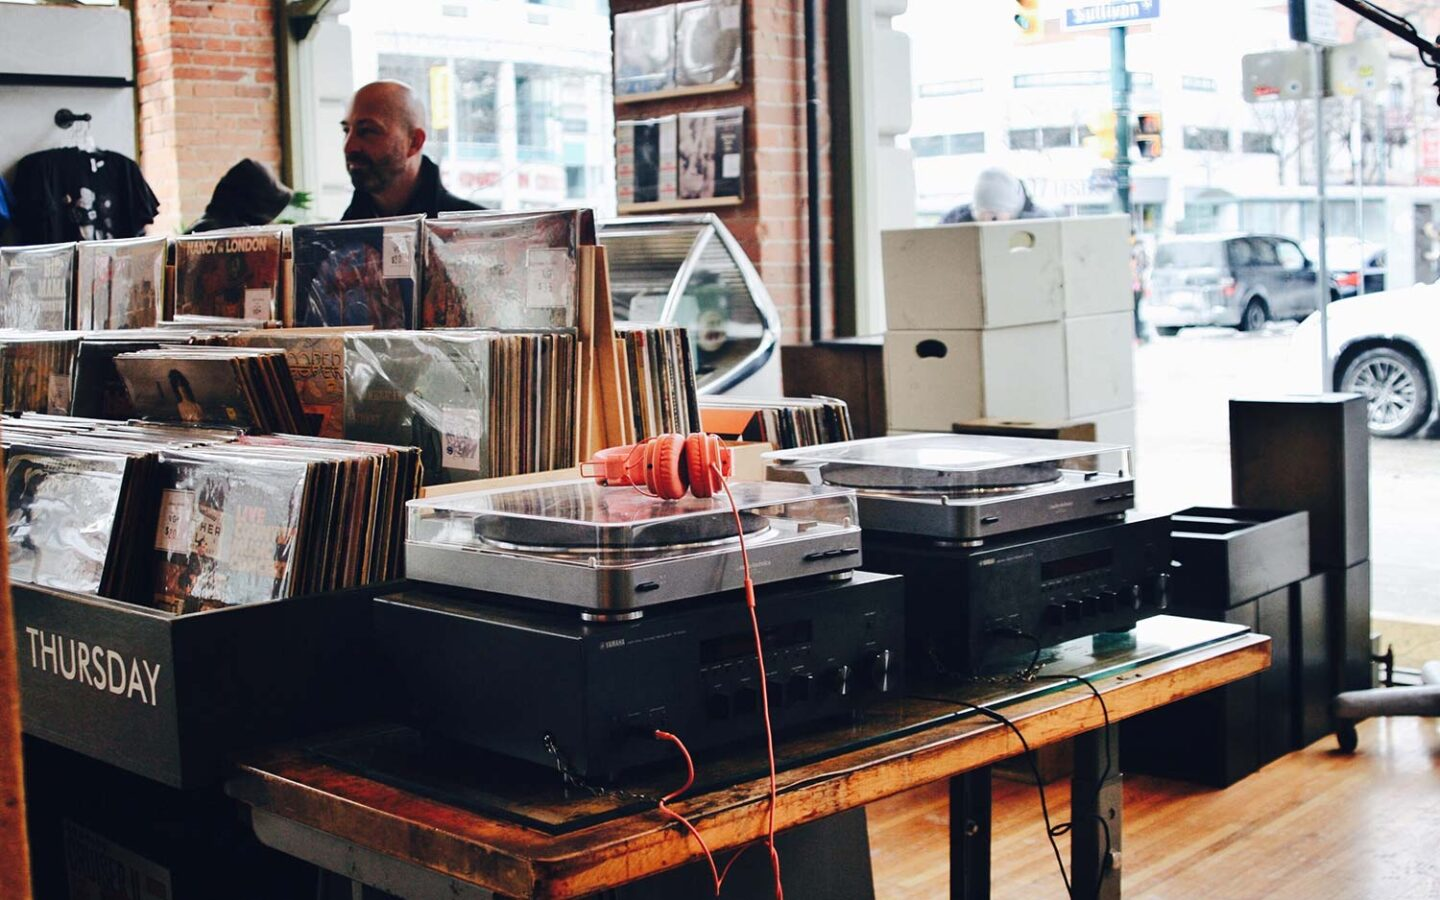 inside of a music store with records and record players on display